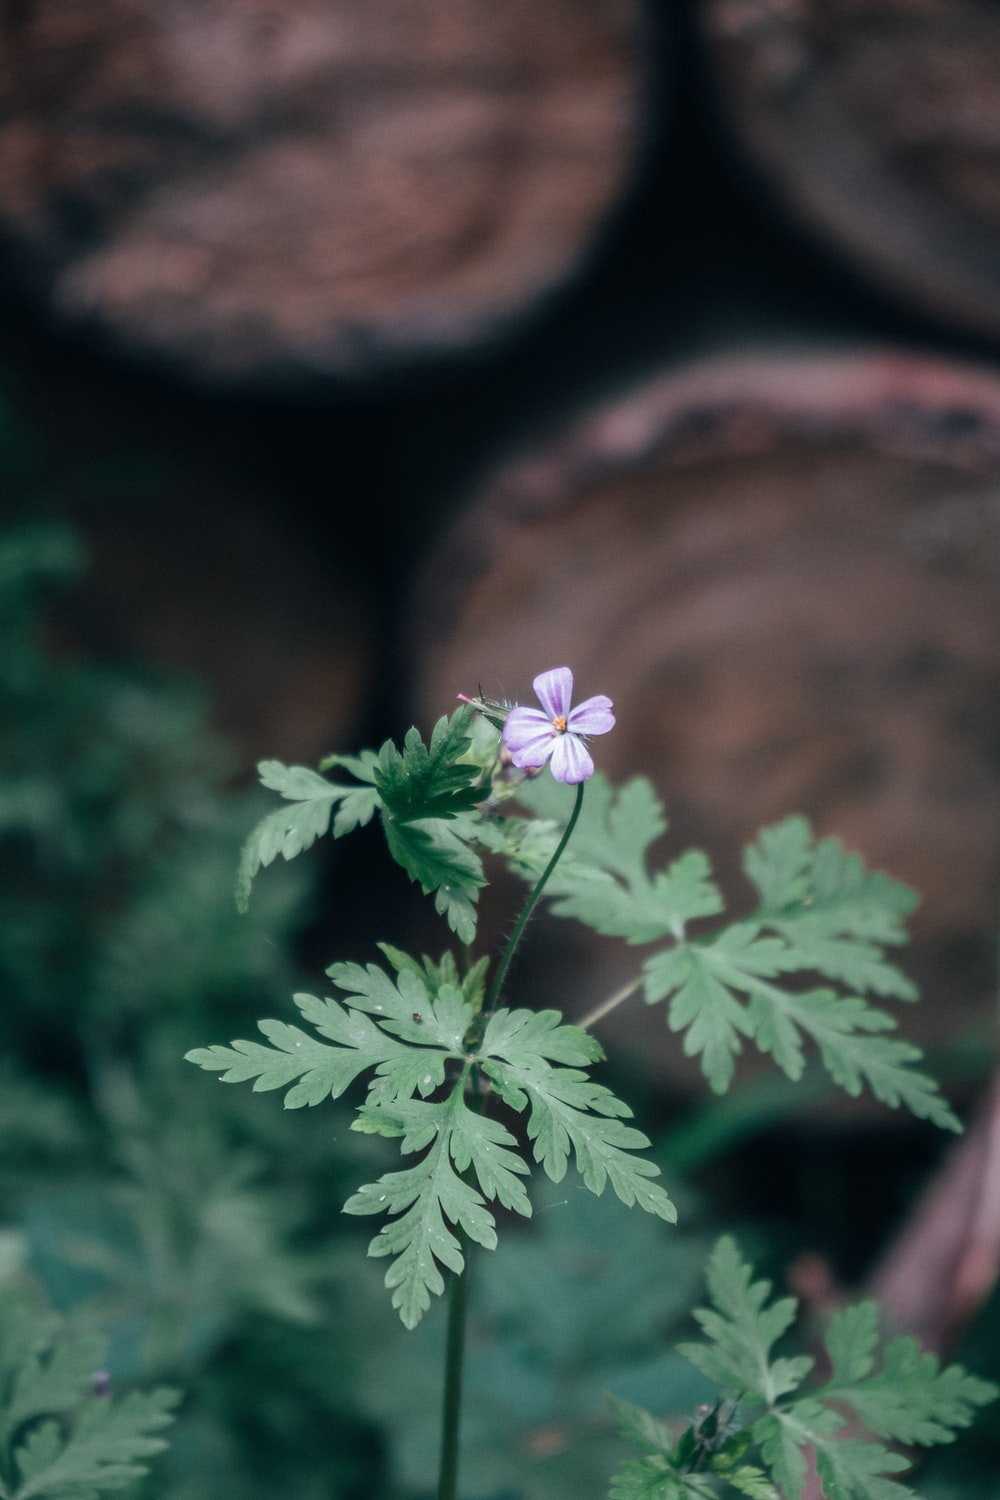 selective focus photography of white-petaled flower